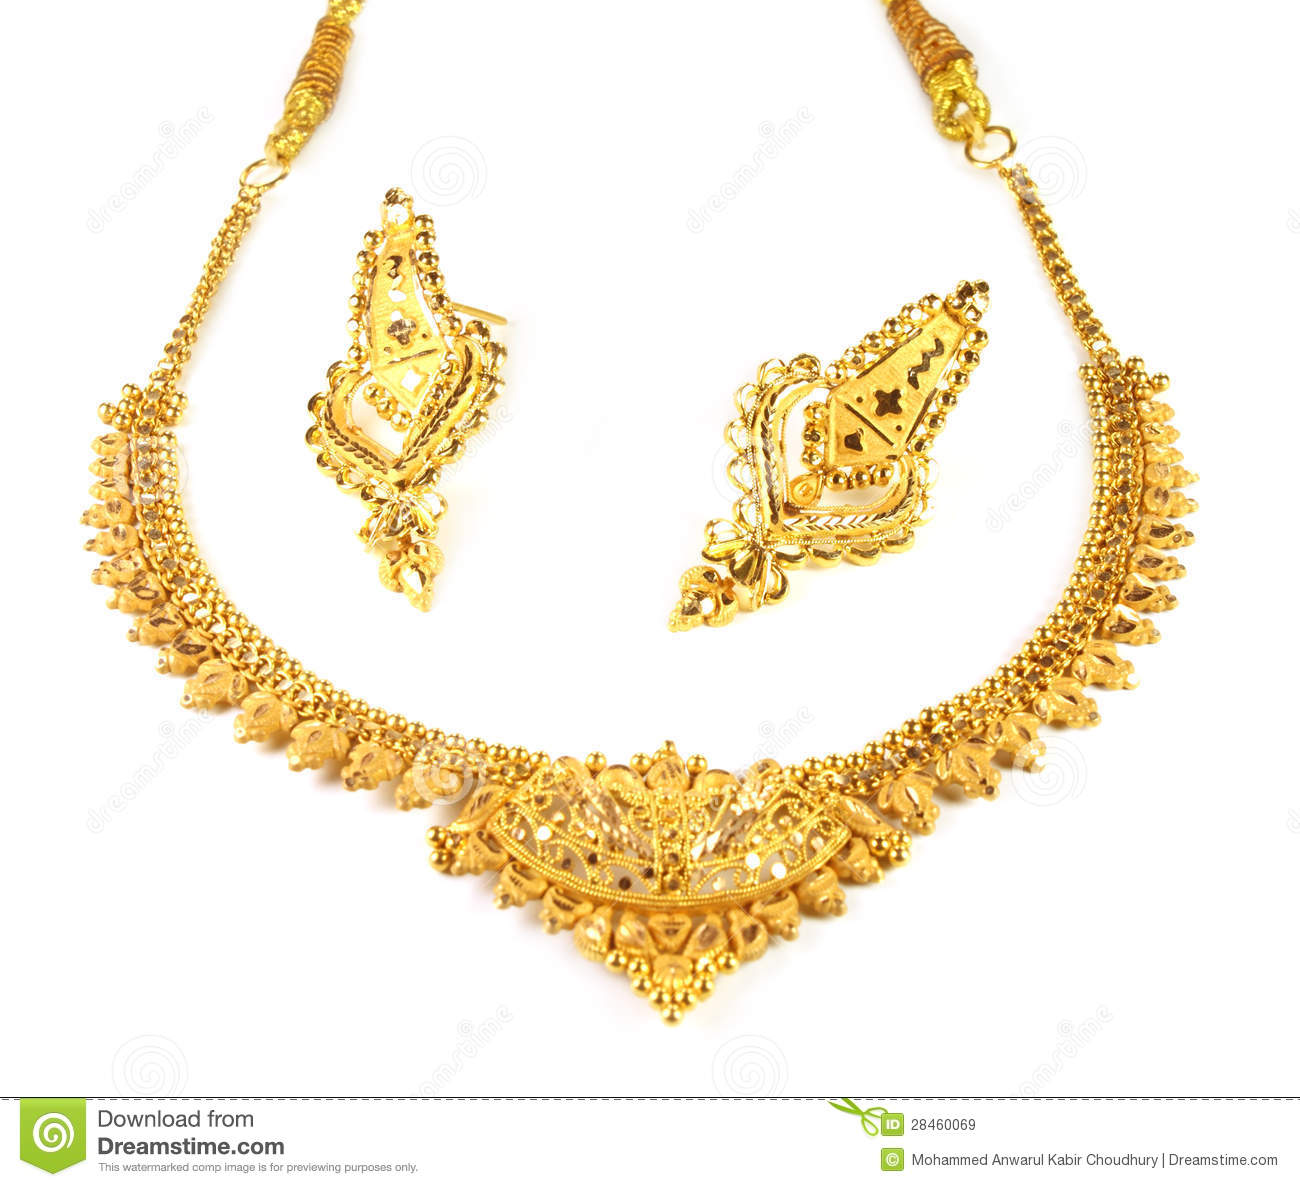 Diamond necklace designs in malabar gold